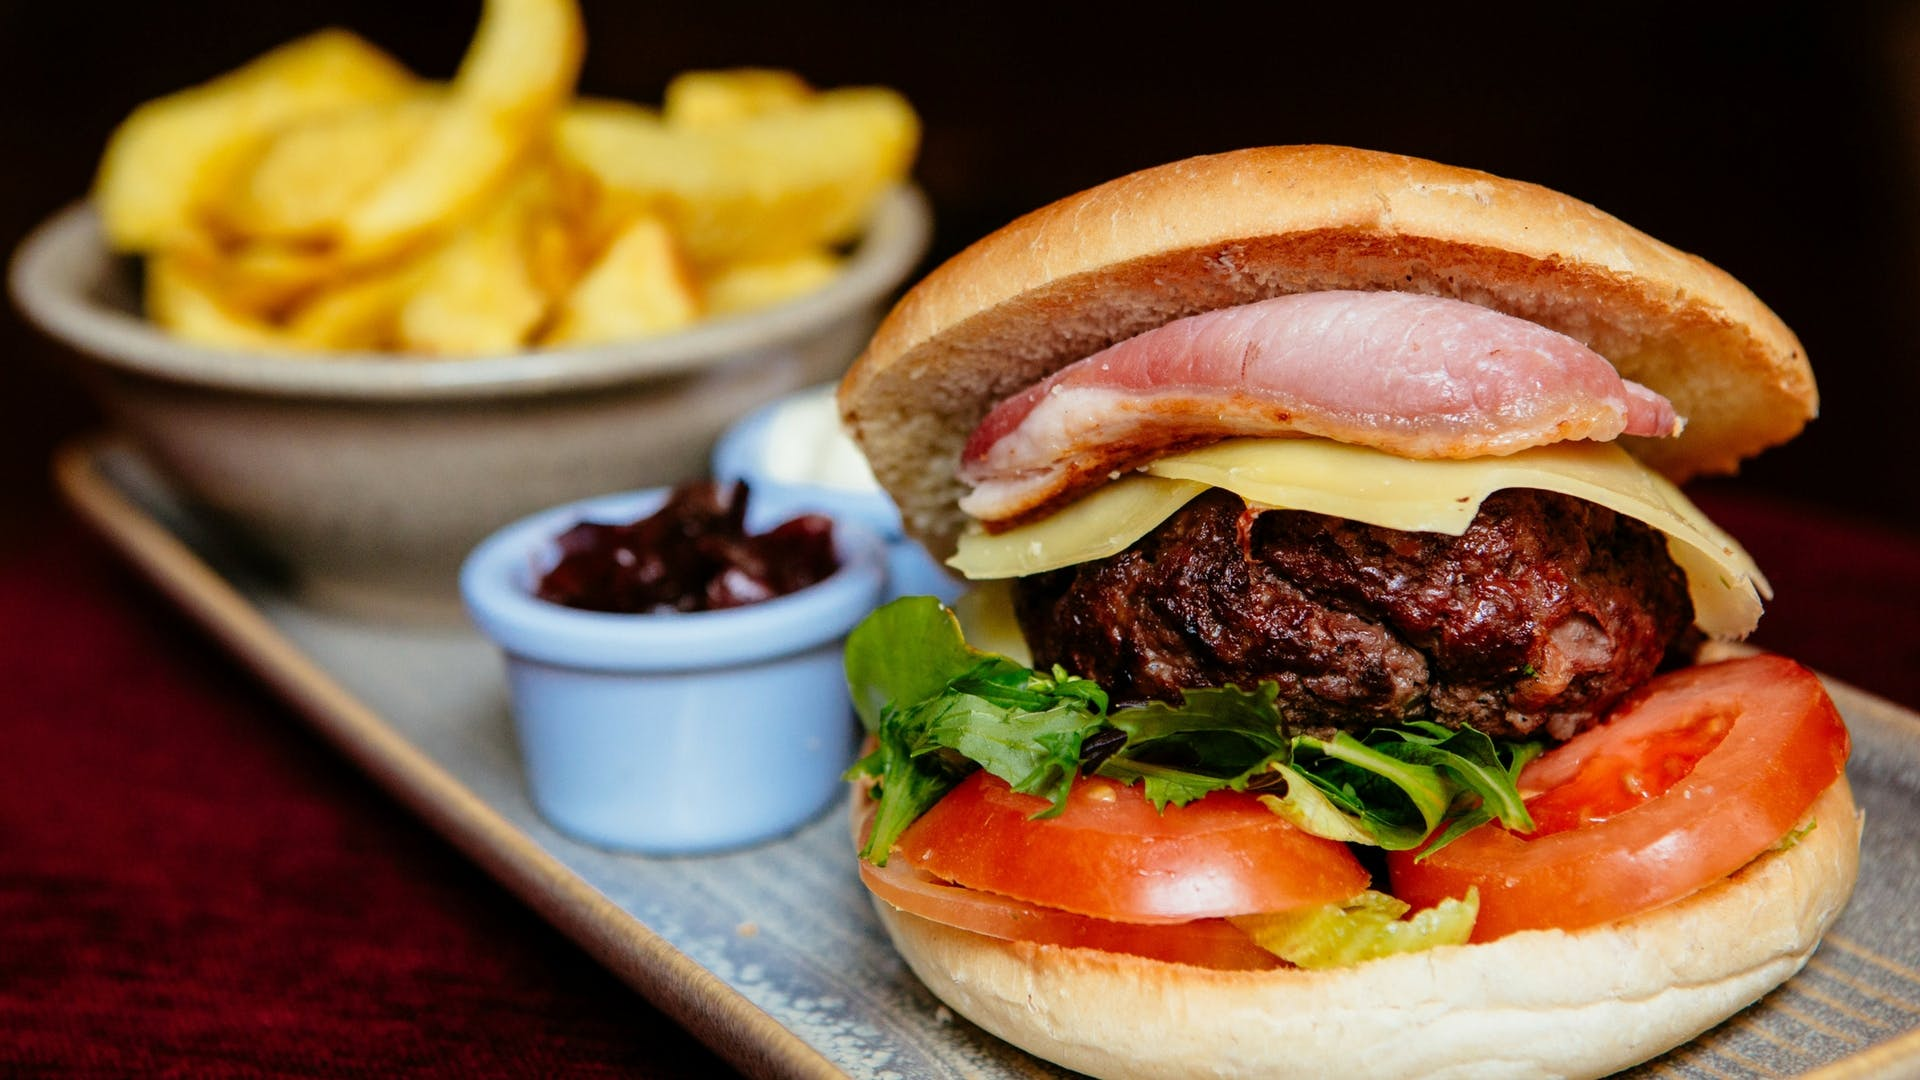 Comfort food with burger at Gleesons Restaurant & Rooms, Roscommon